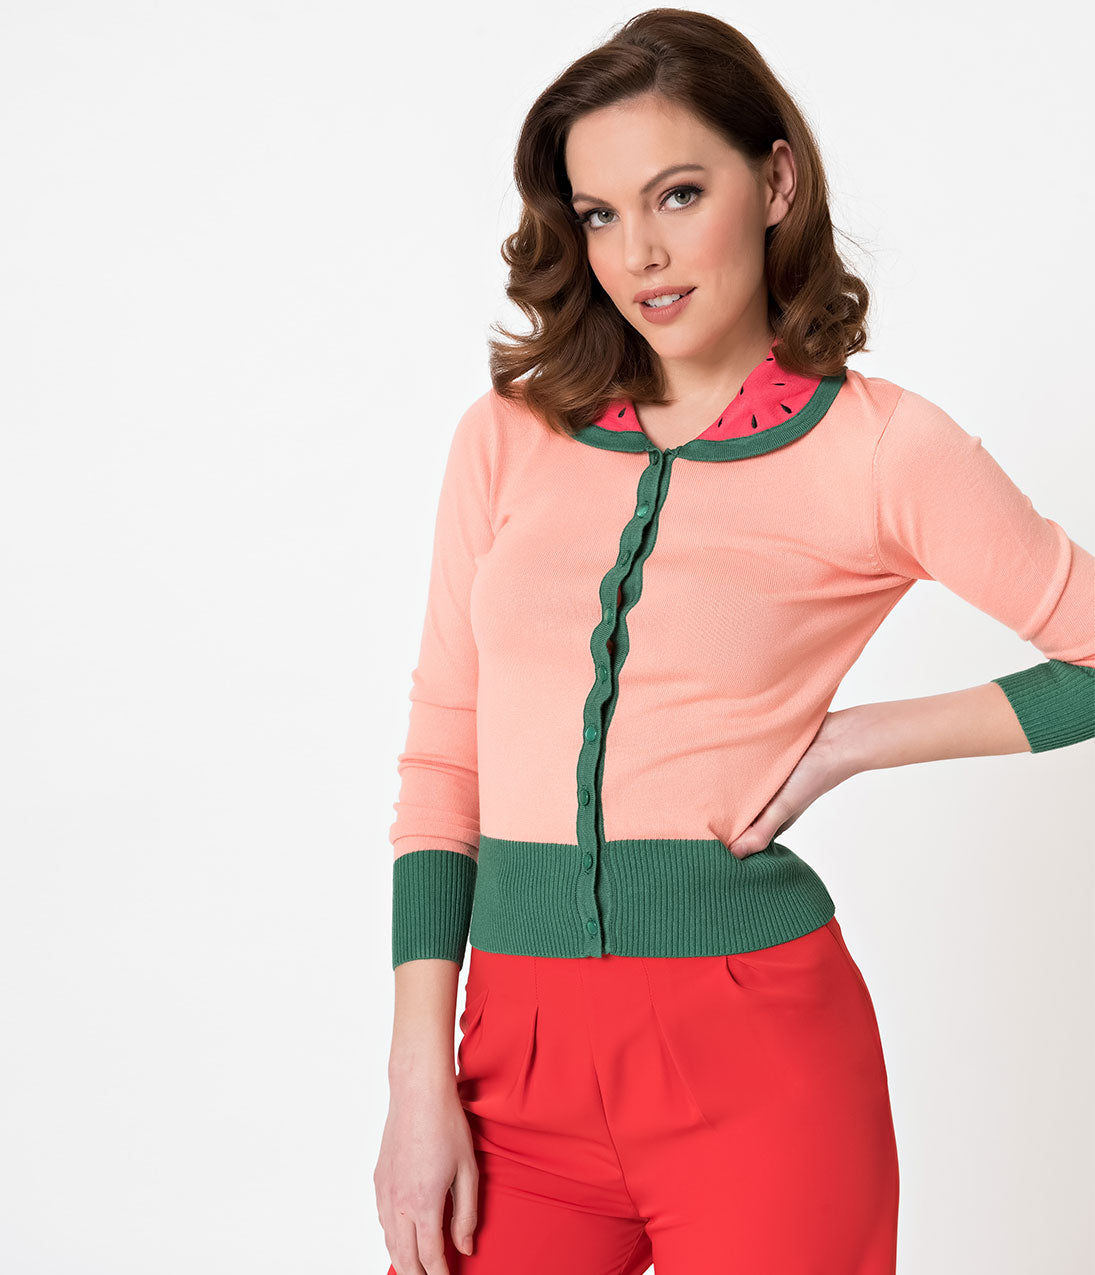 Authentic Natural 1950s Makeup History and Tutorial Voodoo Vixen Baby Pink Long Sleeve Watermelon Cardigan $52.00 AT vintagedancer.com